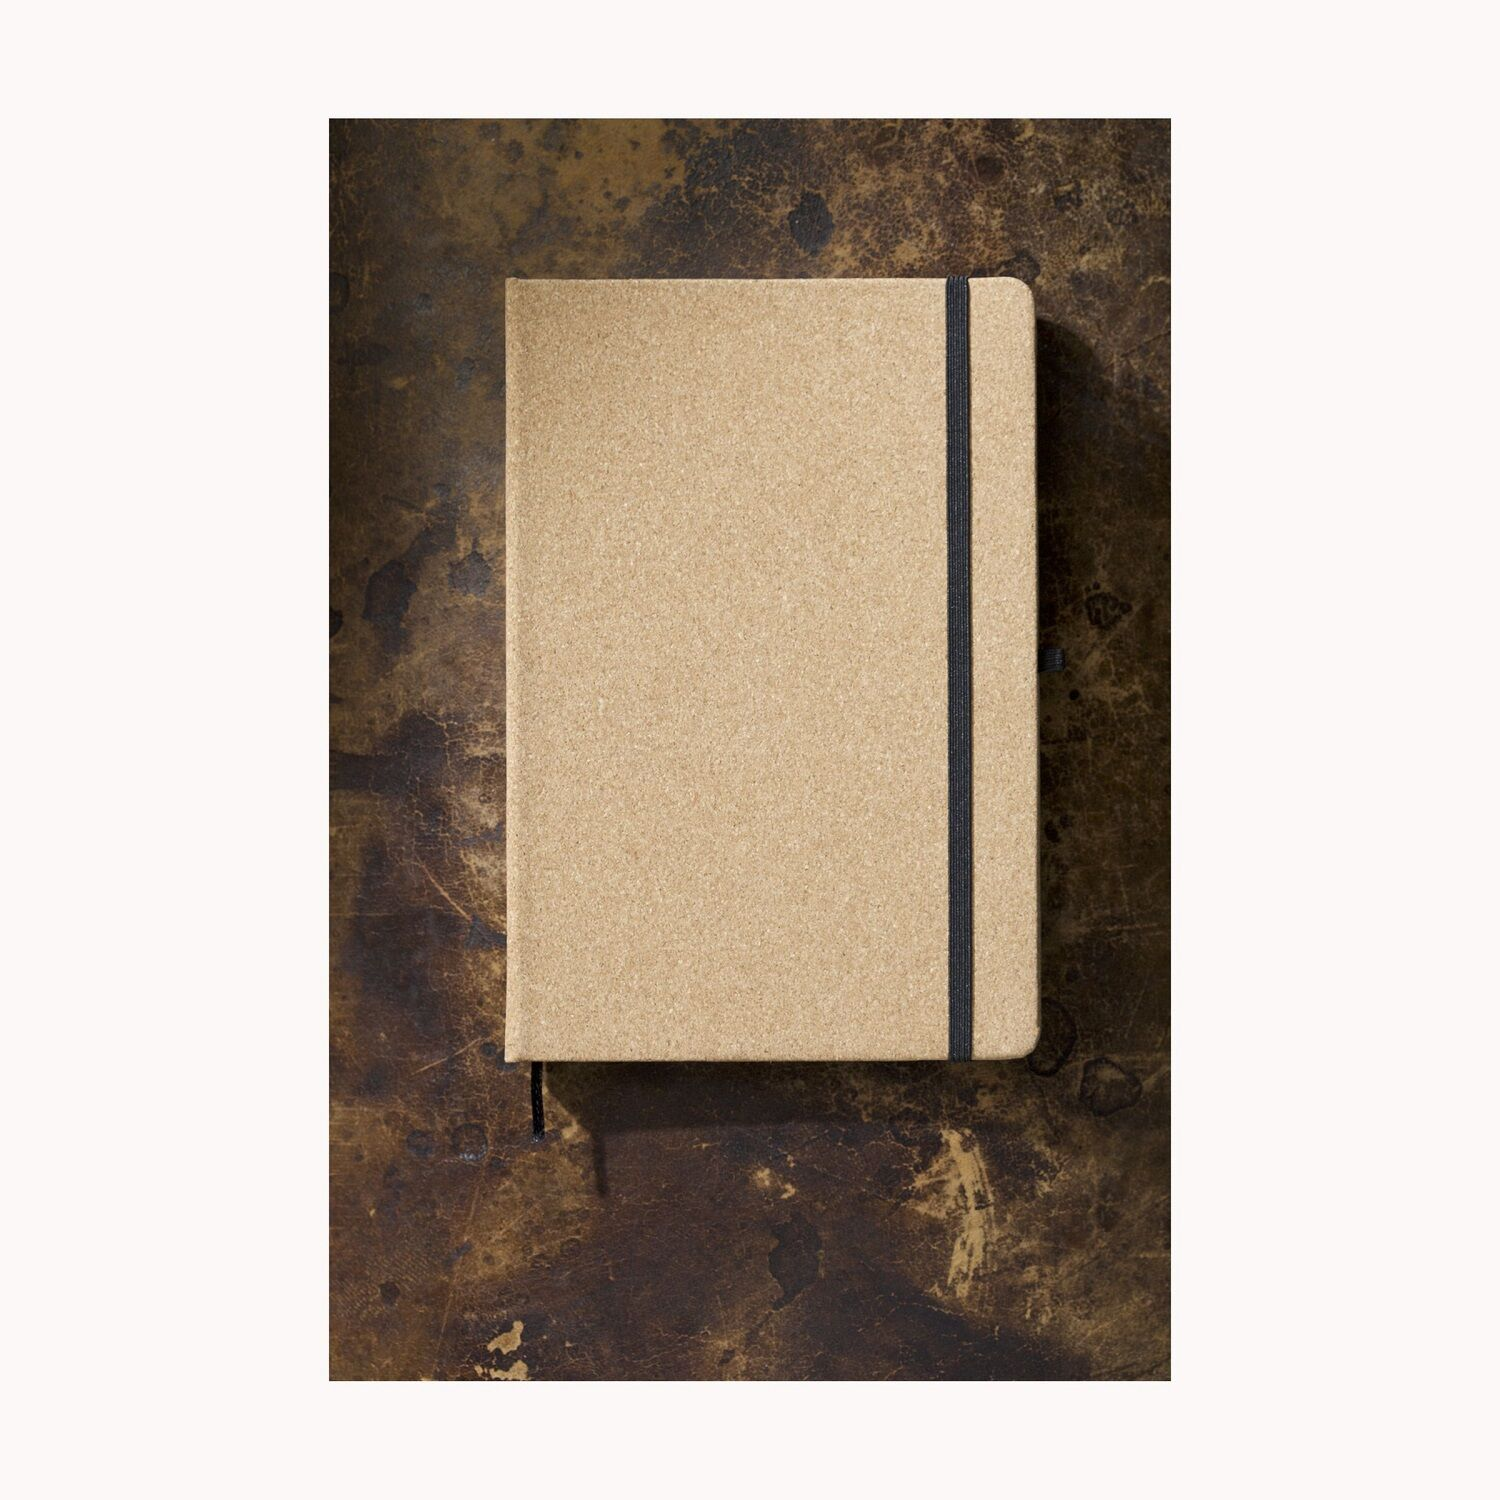 Cork Covered A5 Notebook plain cover